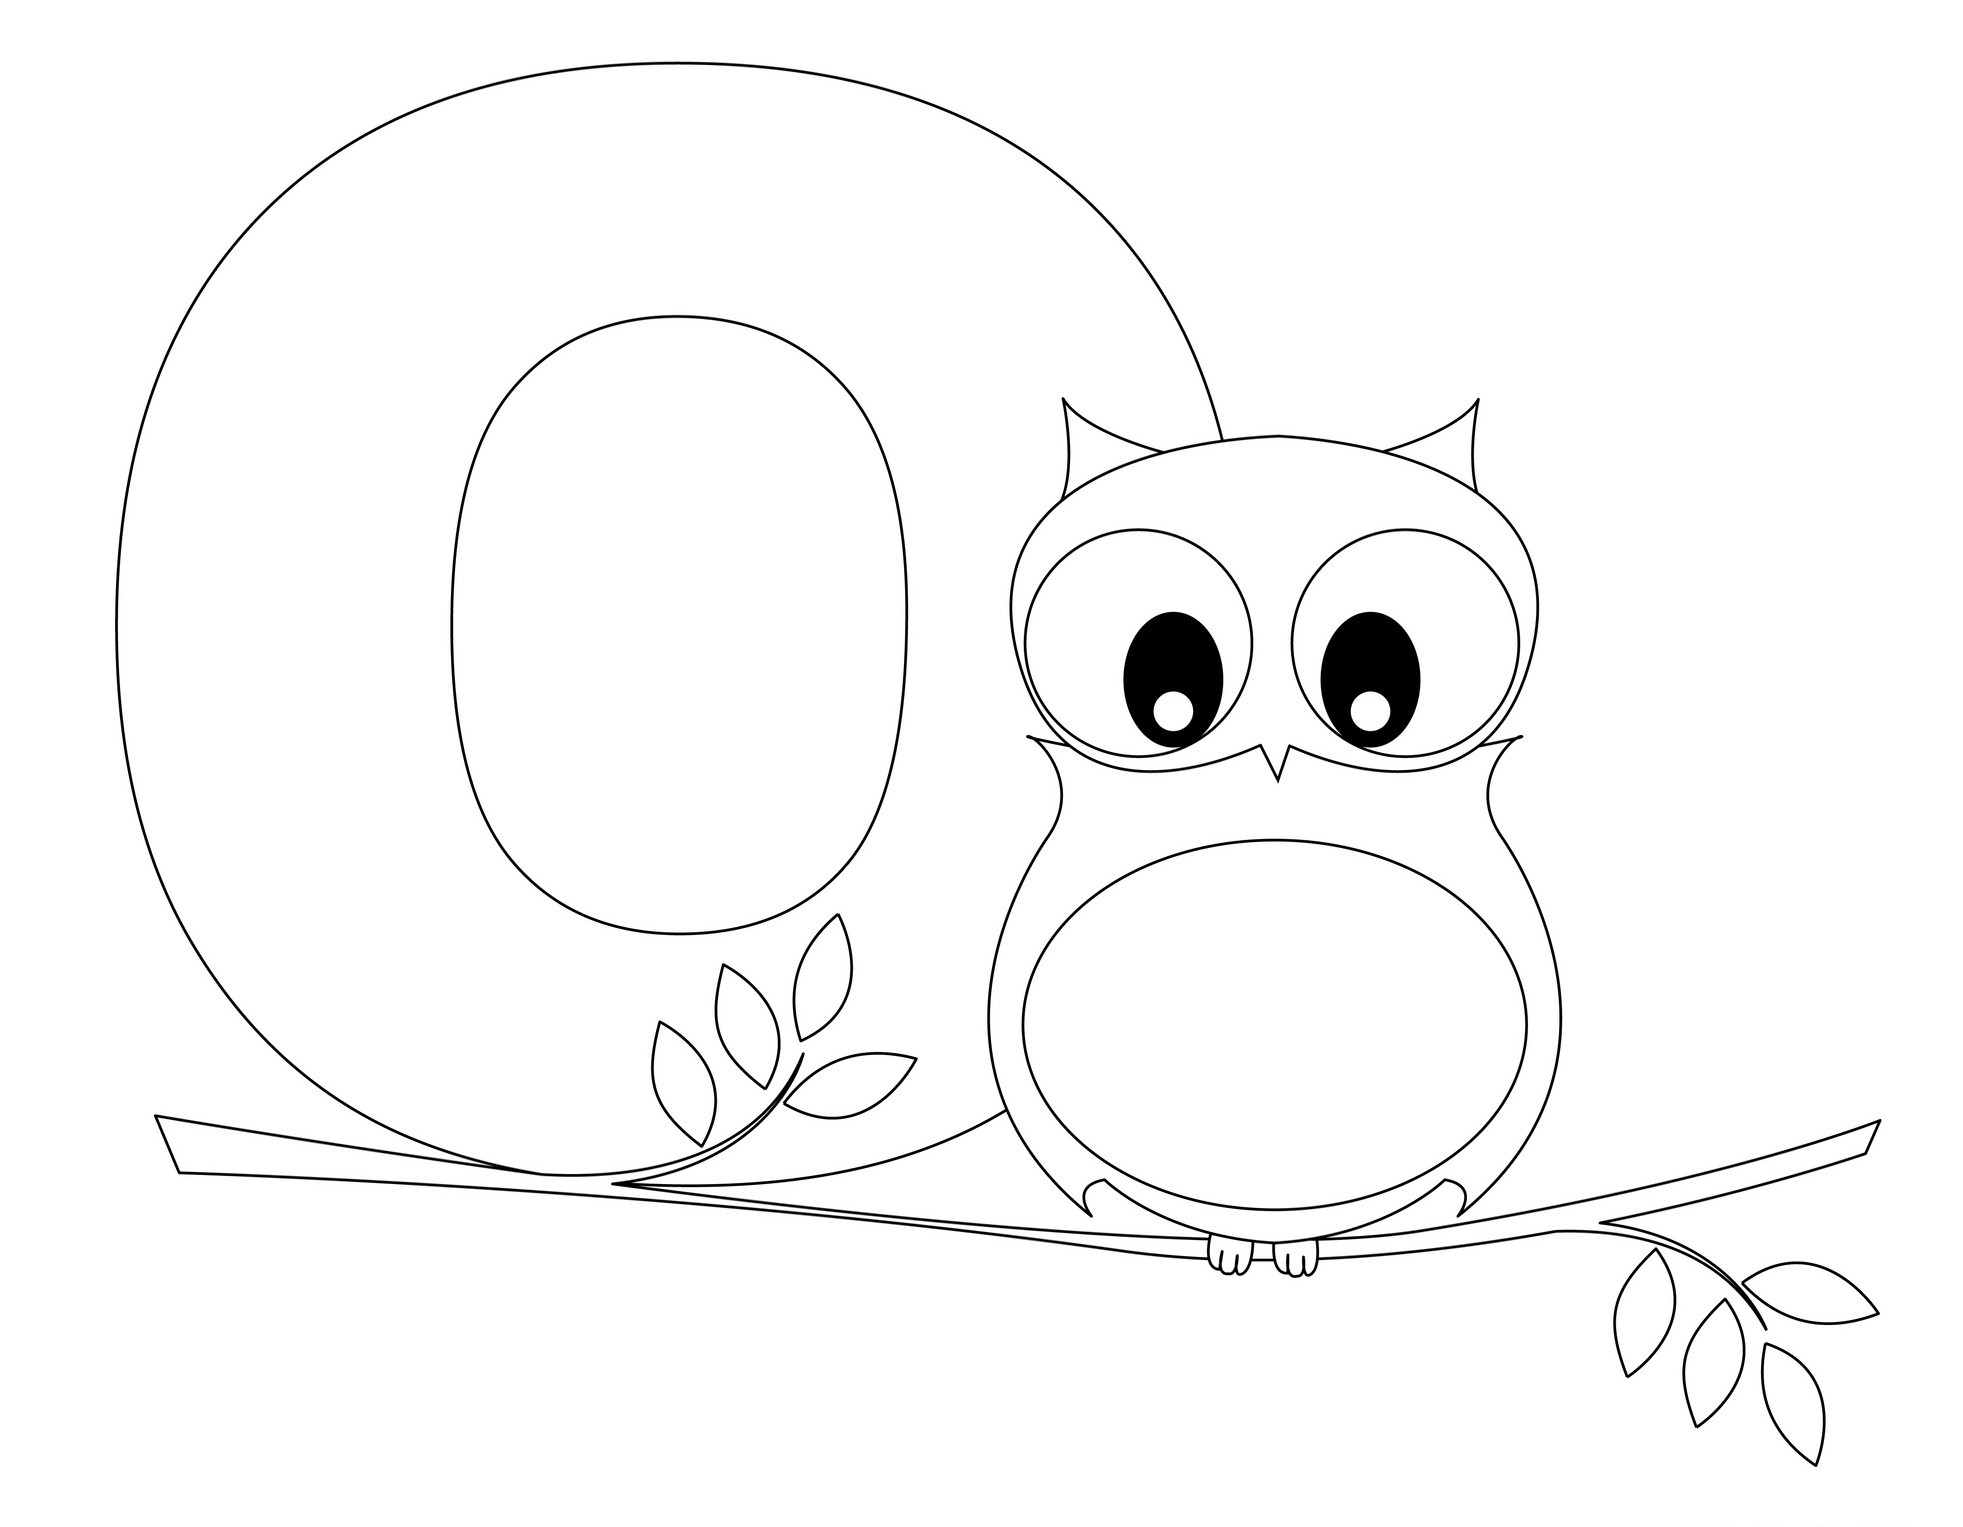 Letter o coloring pages - Alphabet Coloring Pages Letter O